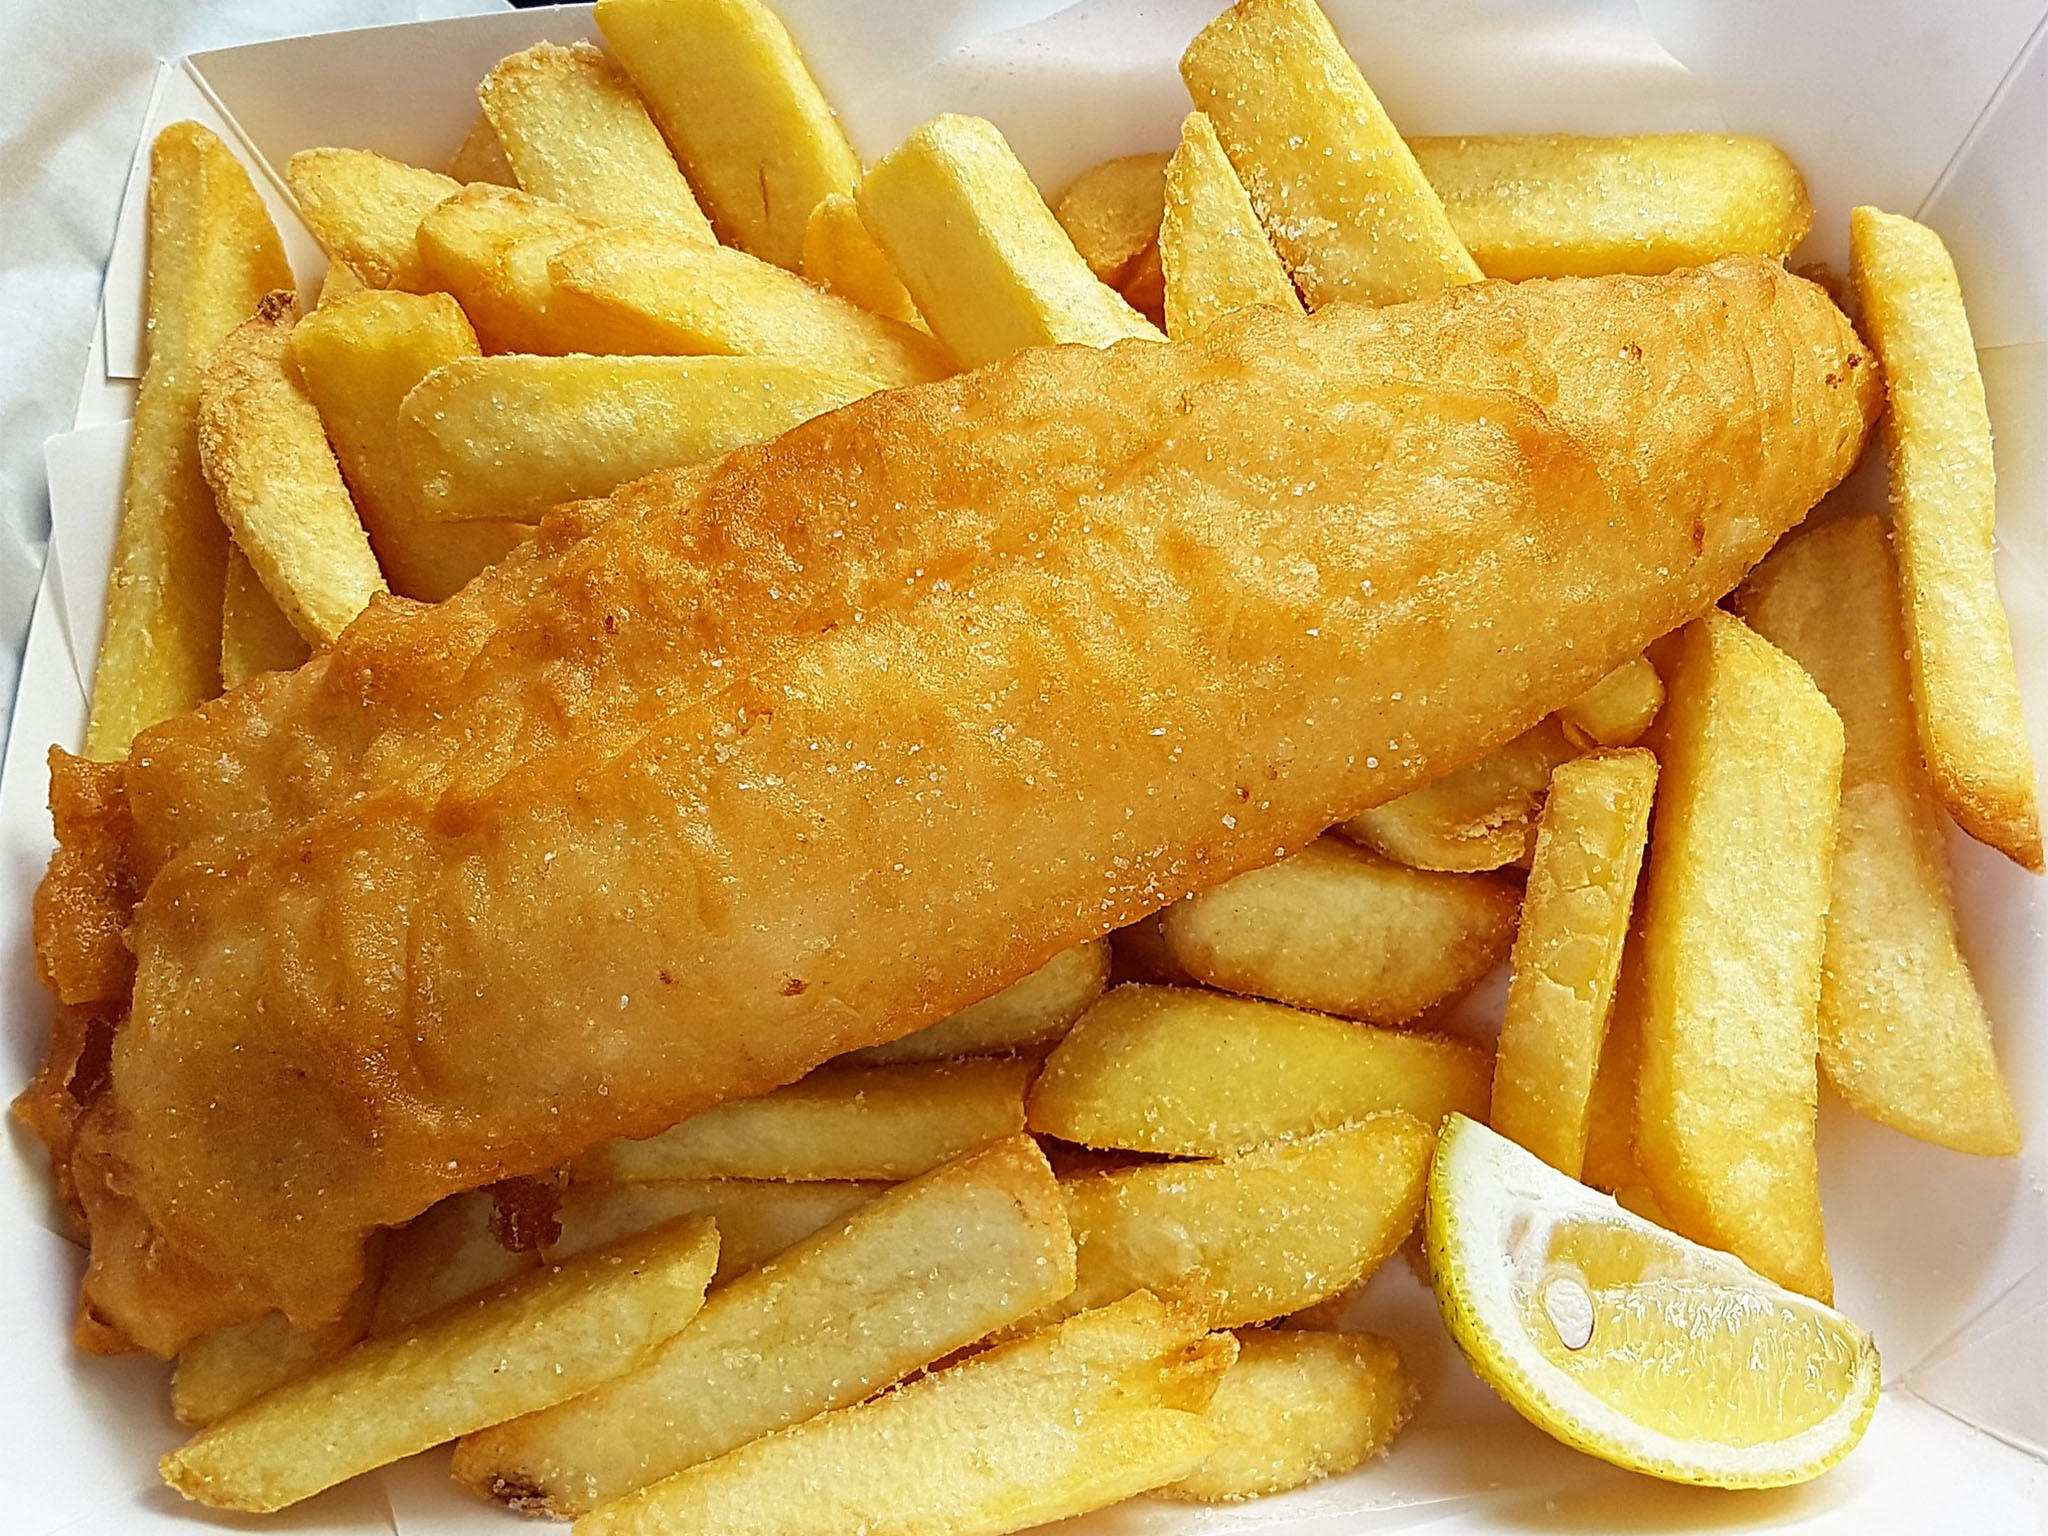 Images of fish and chip shop for sale near melbourne victoria